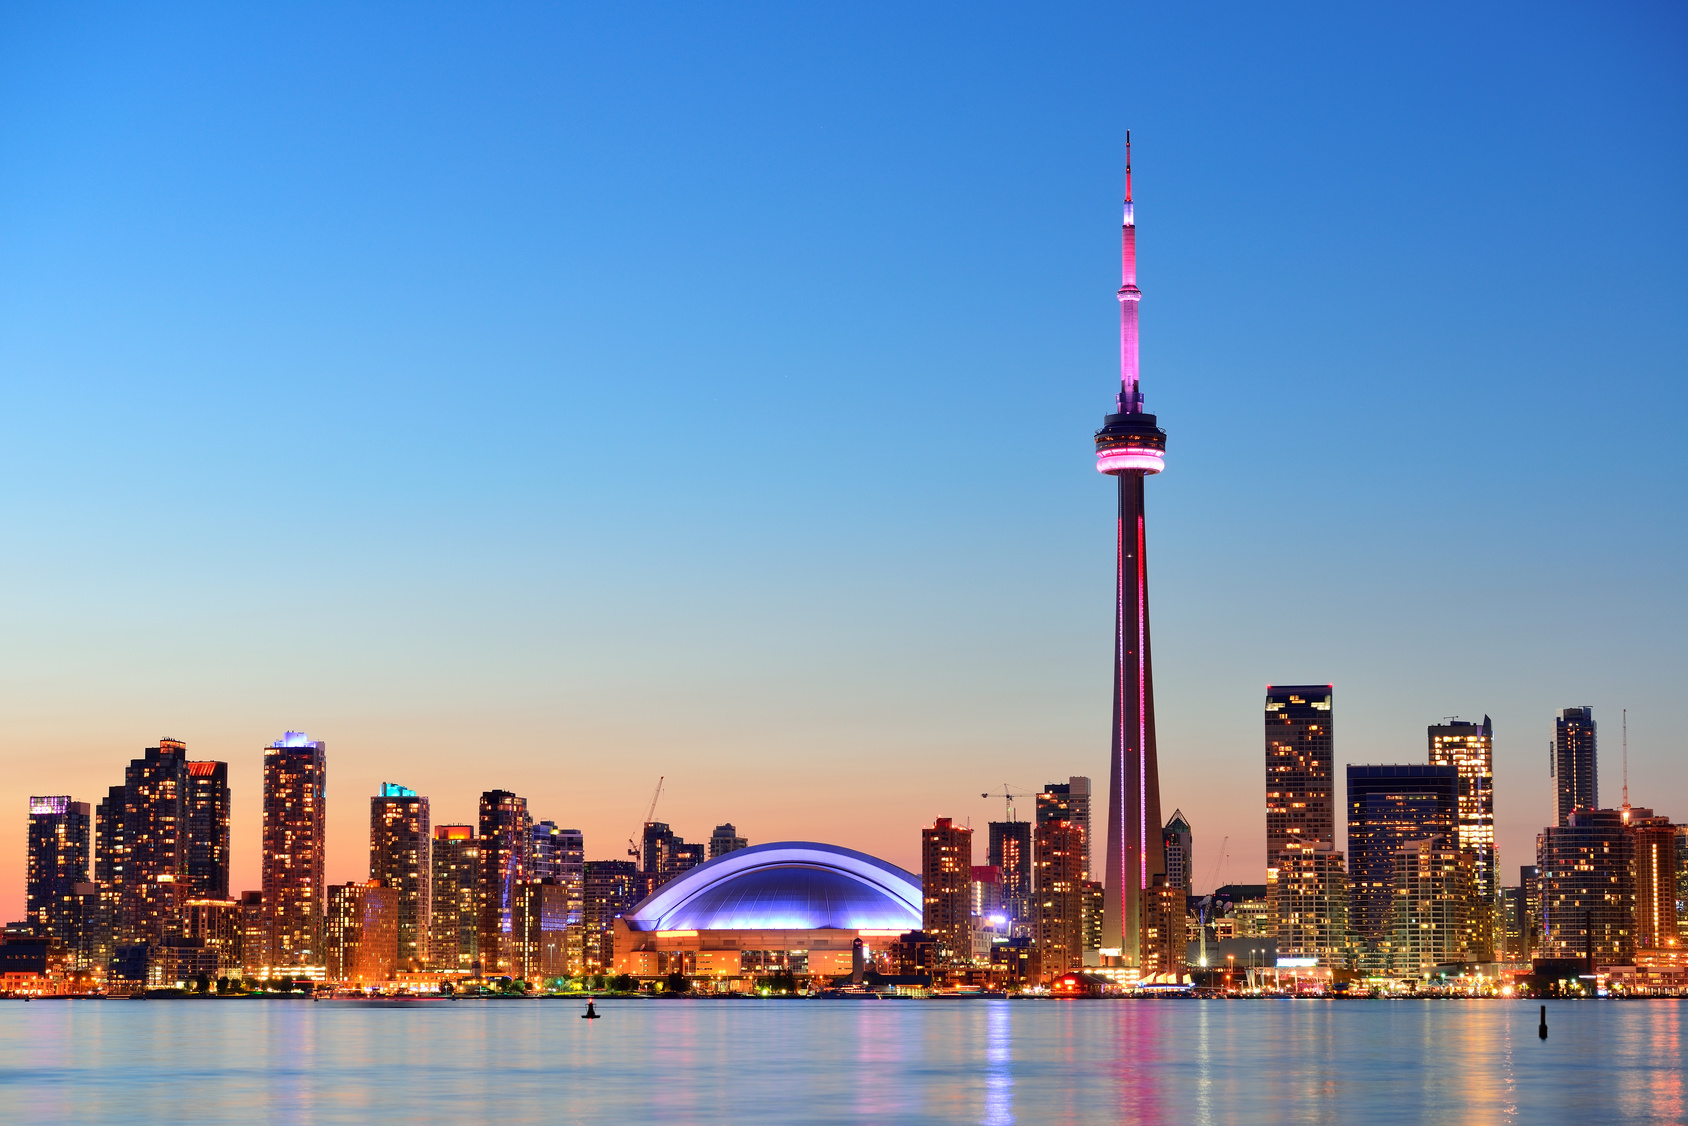 What New Development is Happening in Greater Toronto?